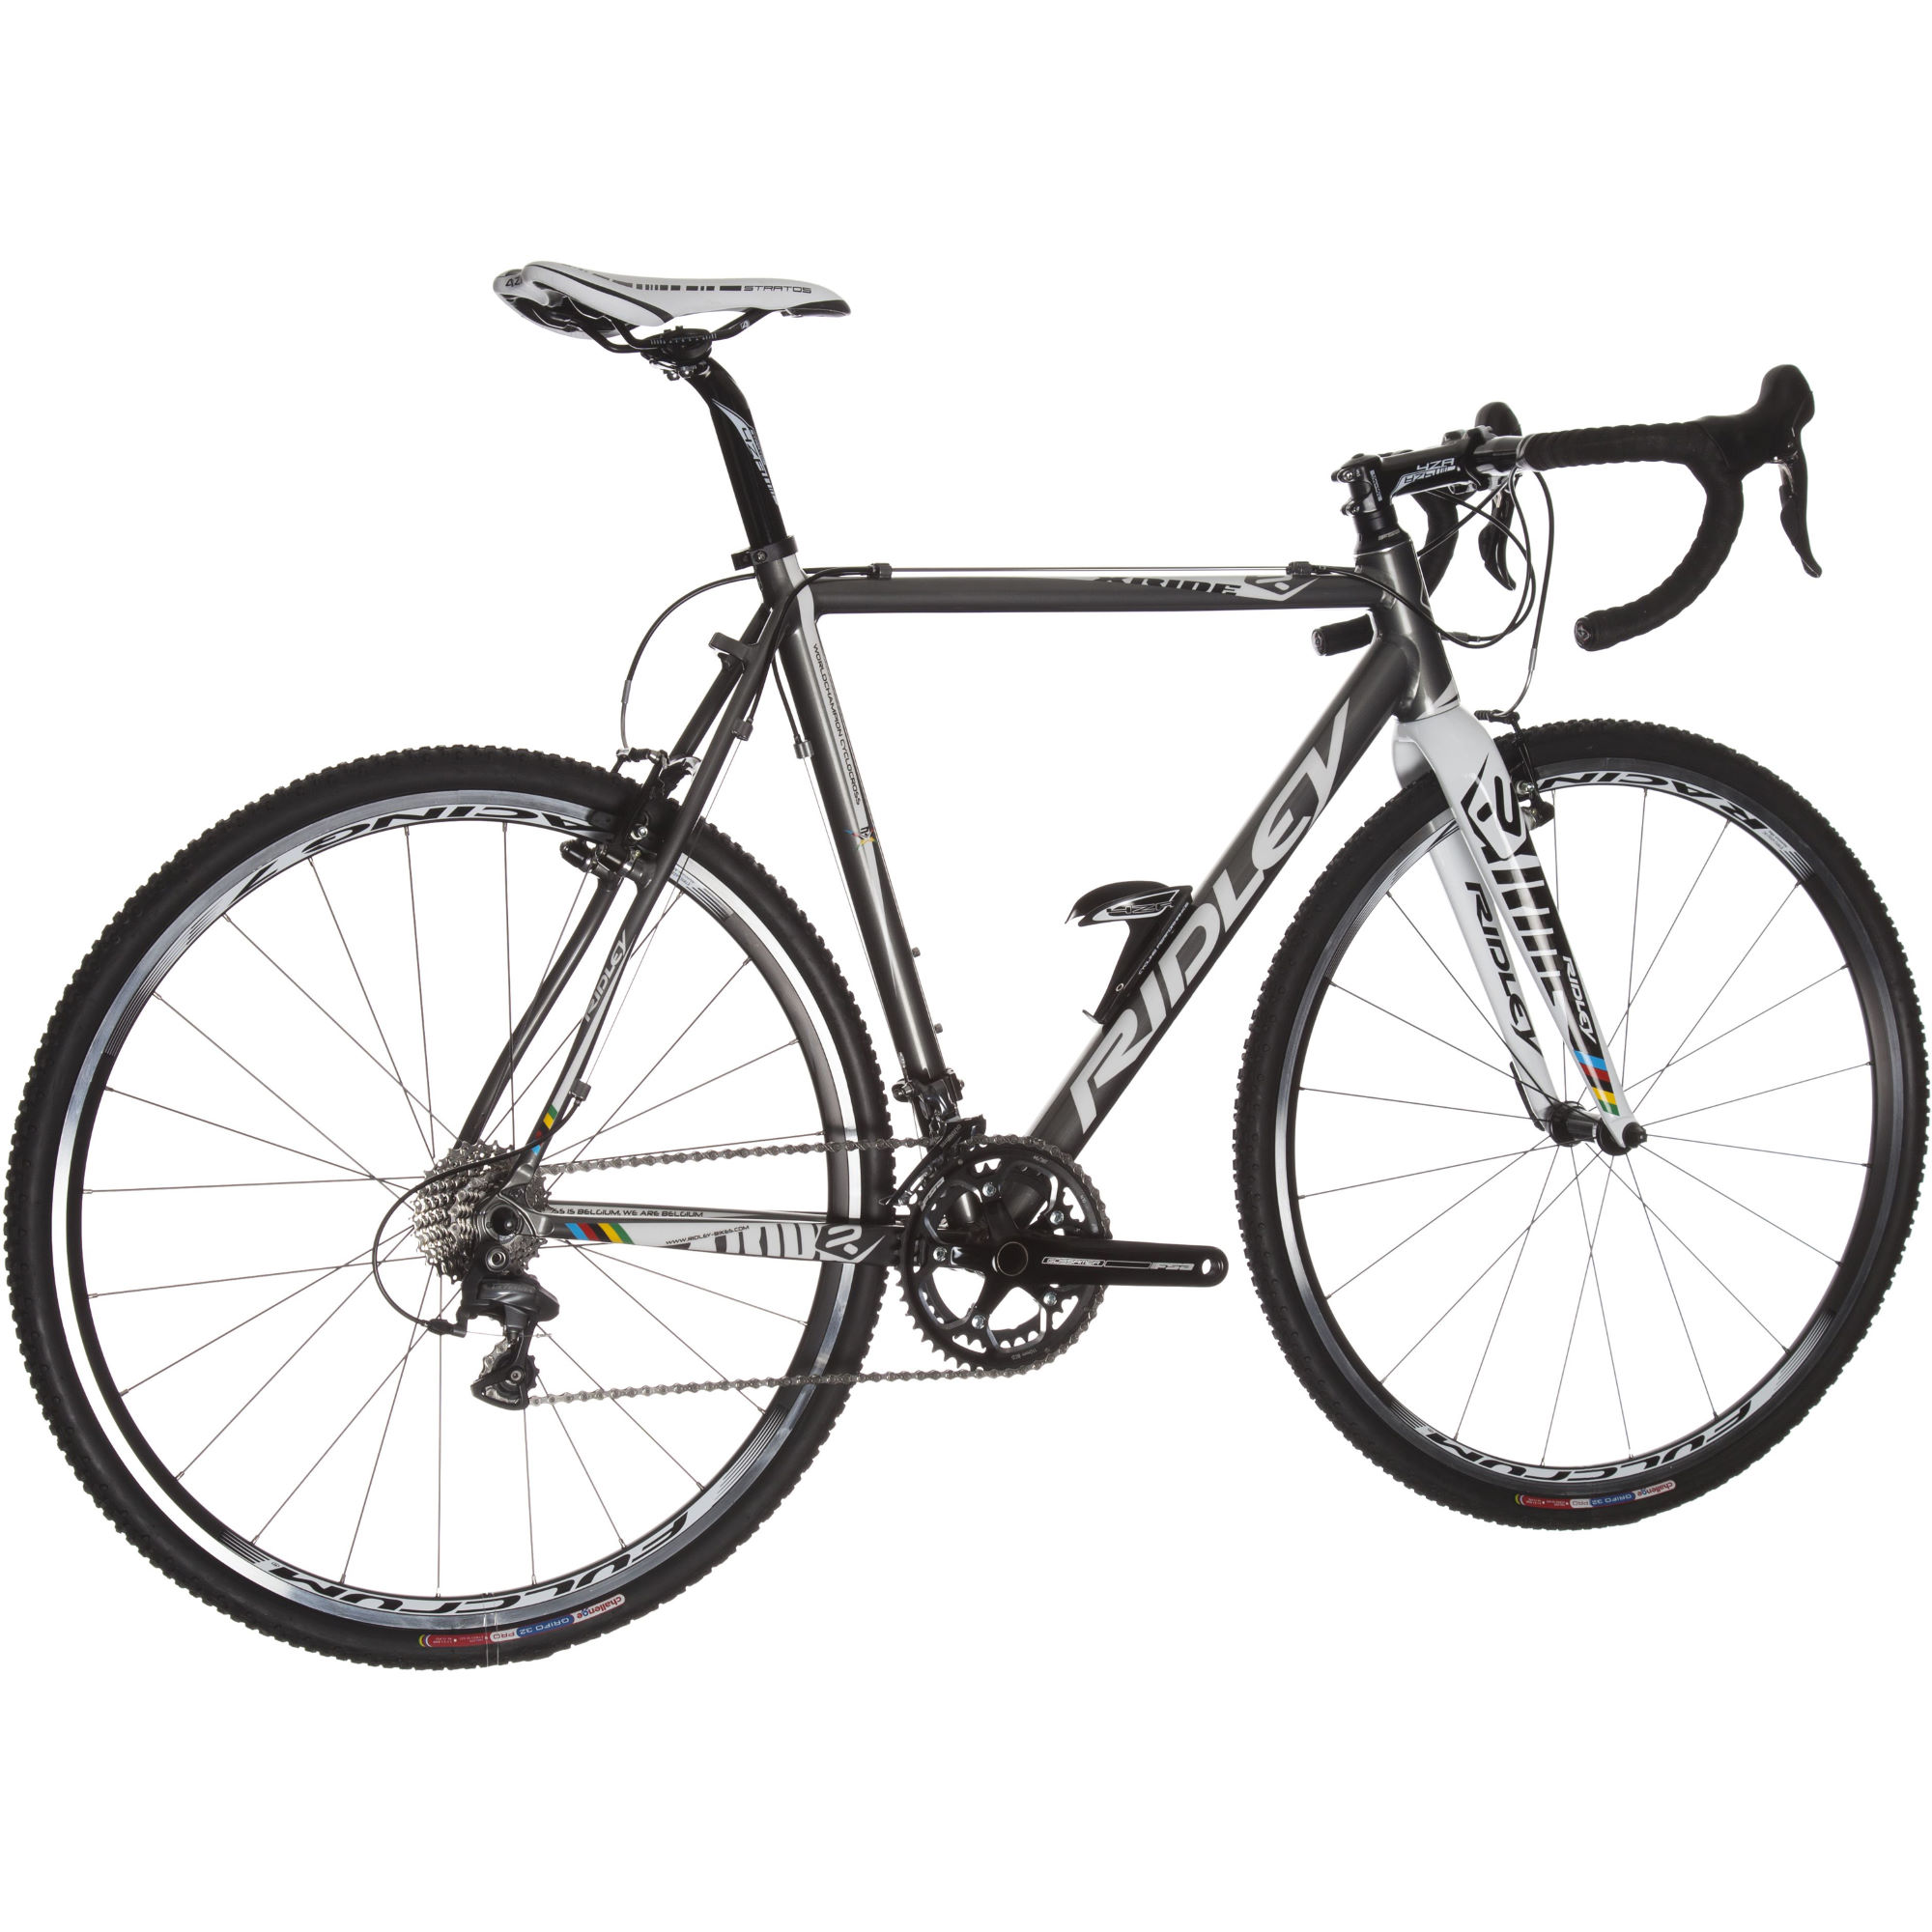 wiggle ridley x ride 1203c1 ultegra 2013 cyclocross bikes. Black Bedroom Furniture Sets. Home Design Ideas